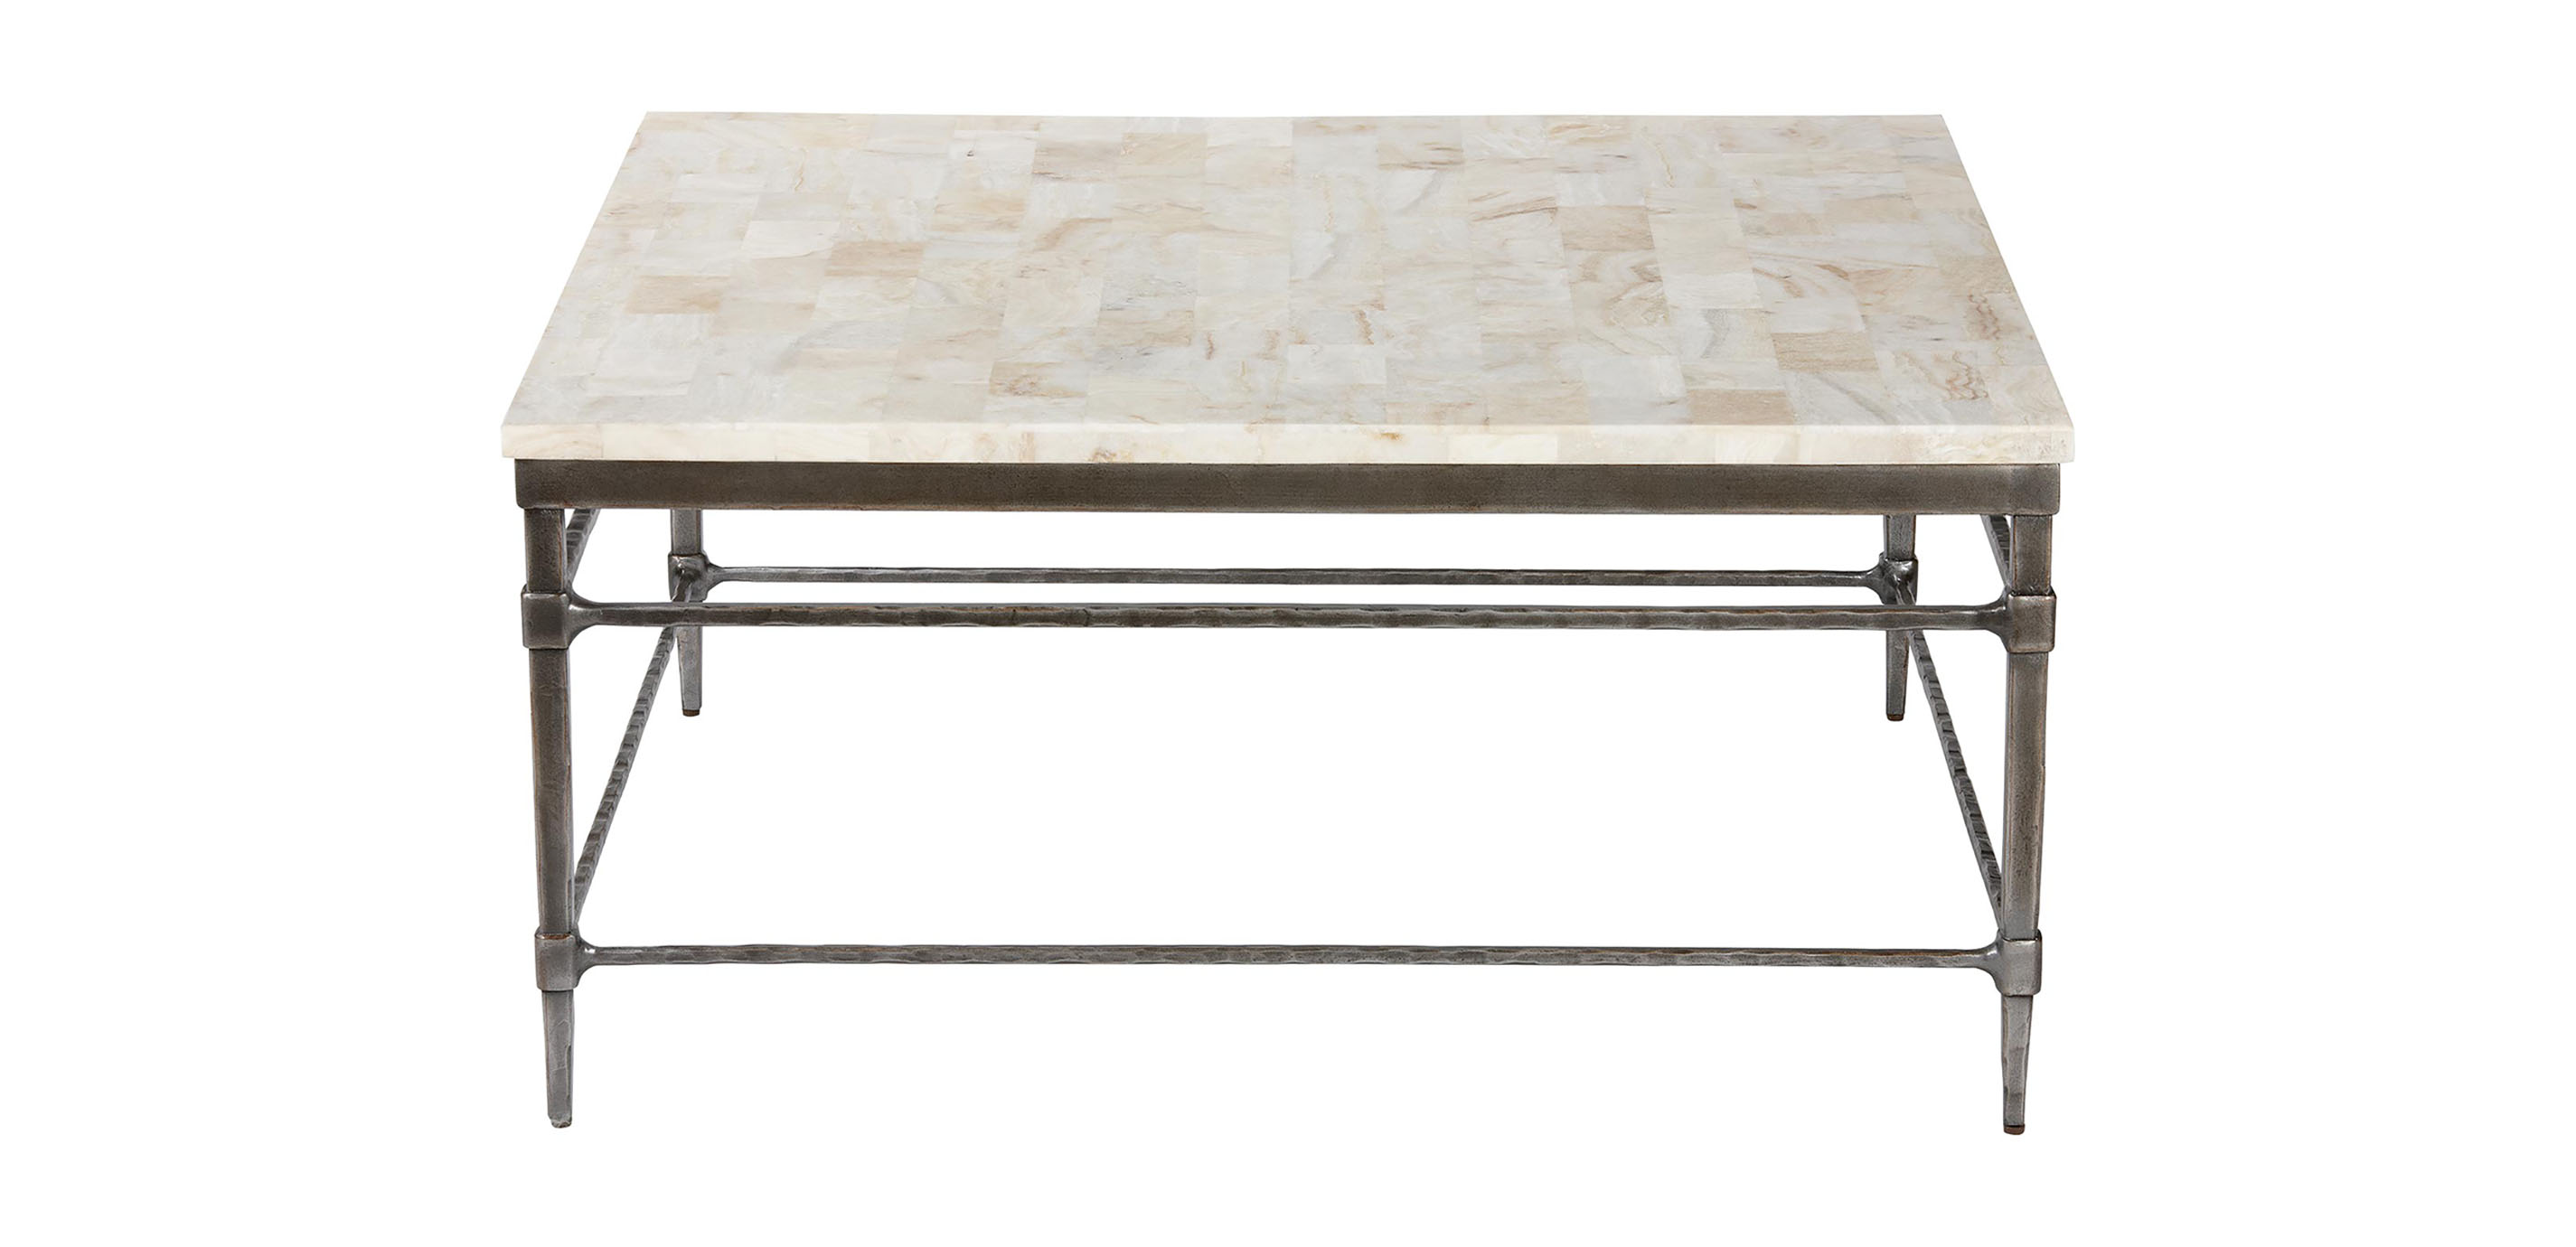 Vida Square Stone Top Coffee Table Coffee Tables Ethan Allen